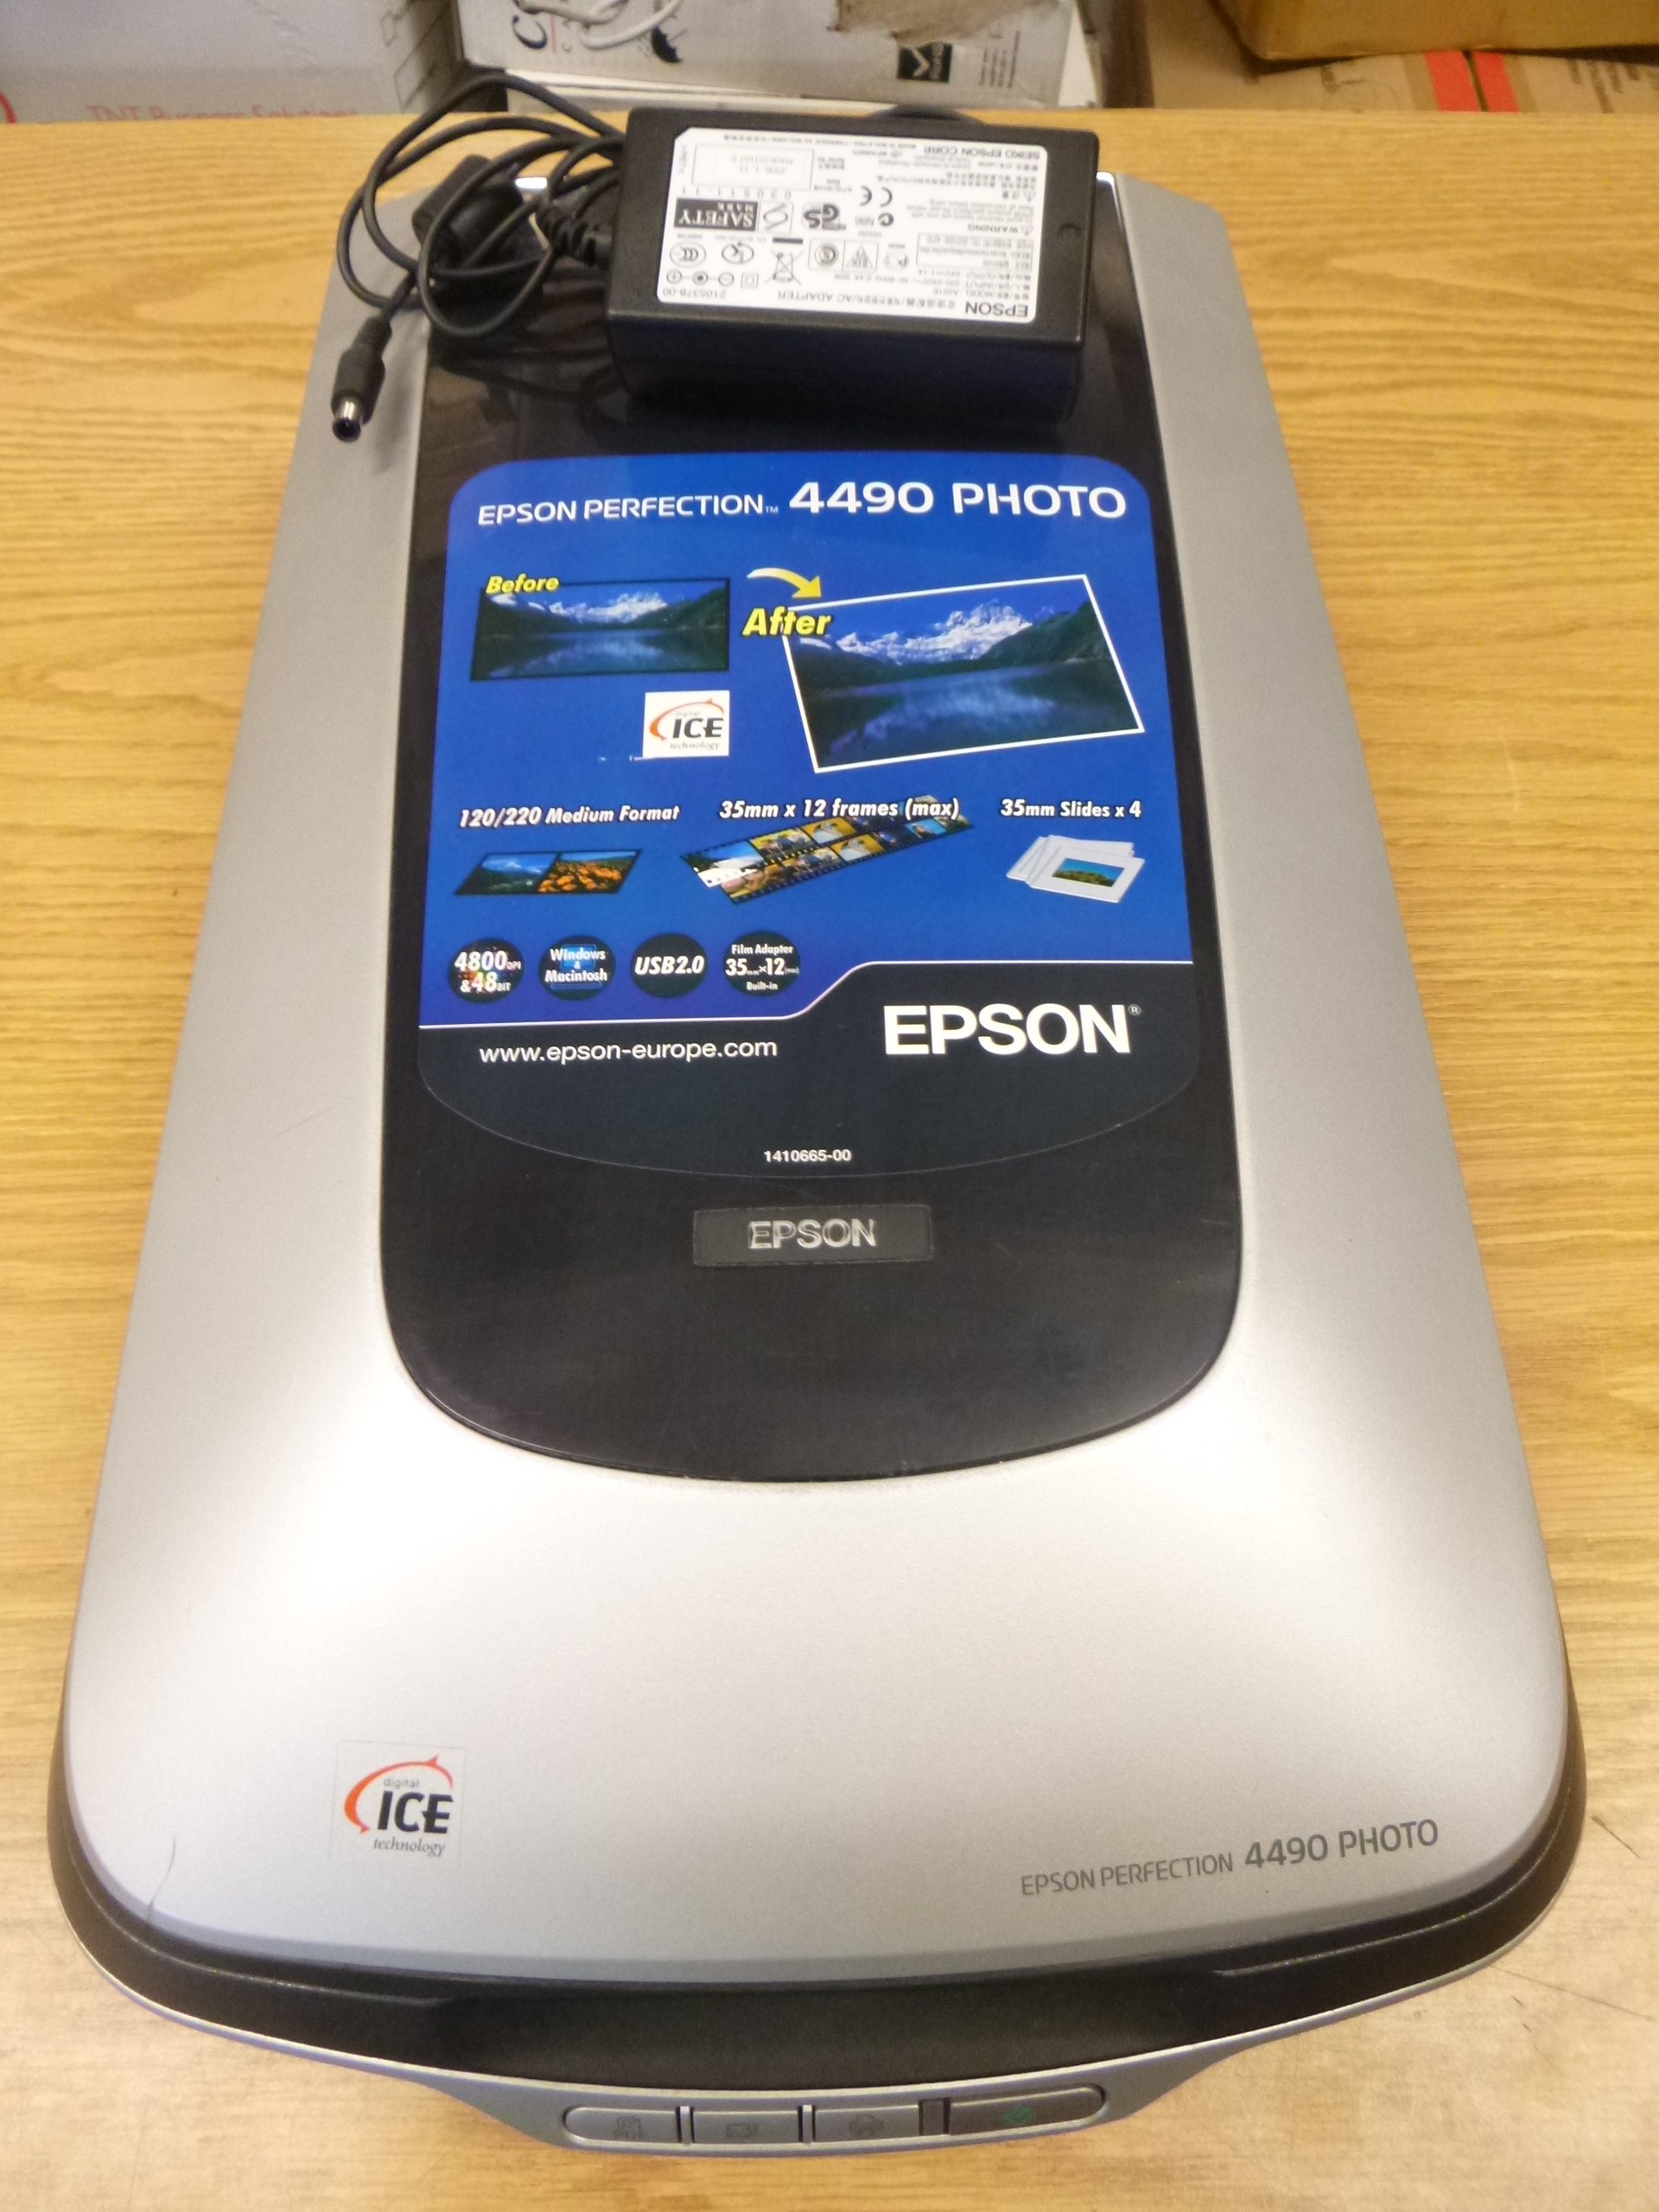 Epson Perfection 4490 Photo Flatbed Scanner With Psu Model Number